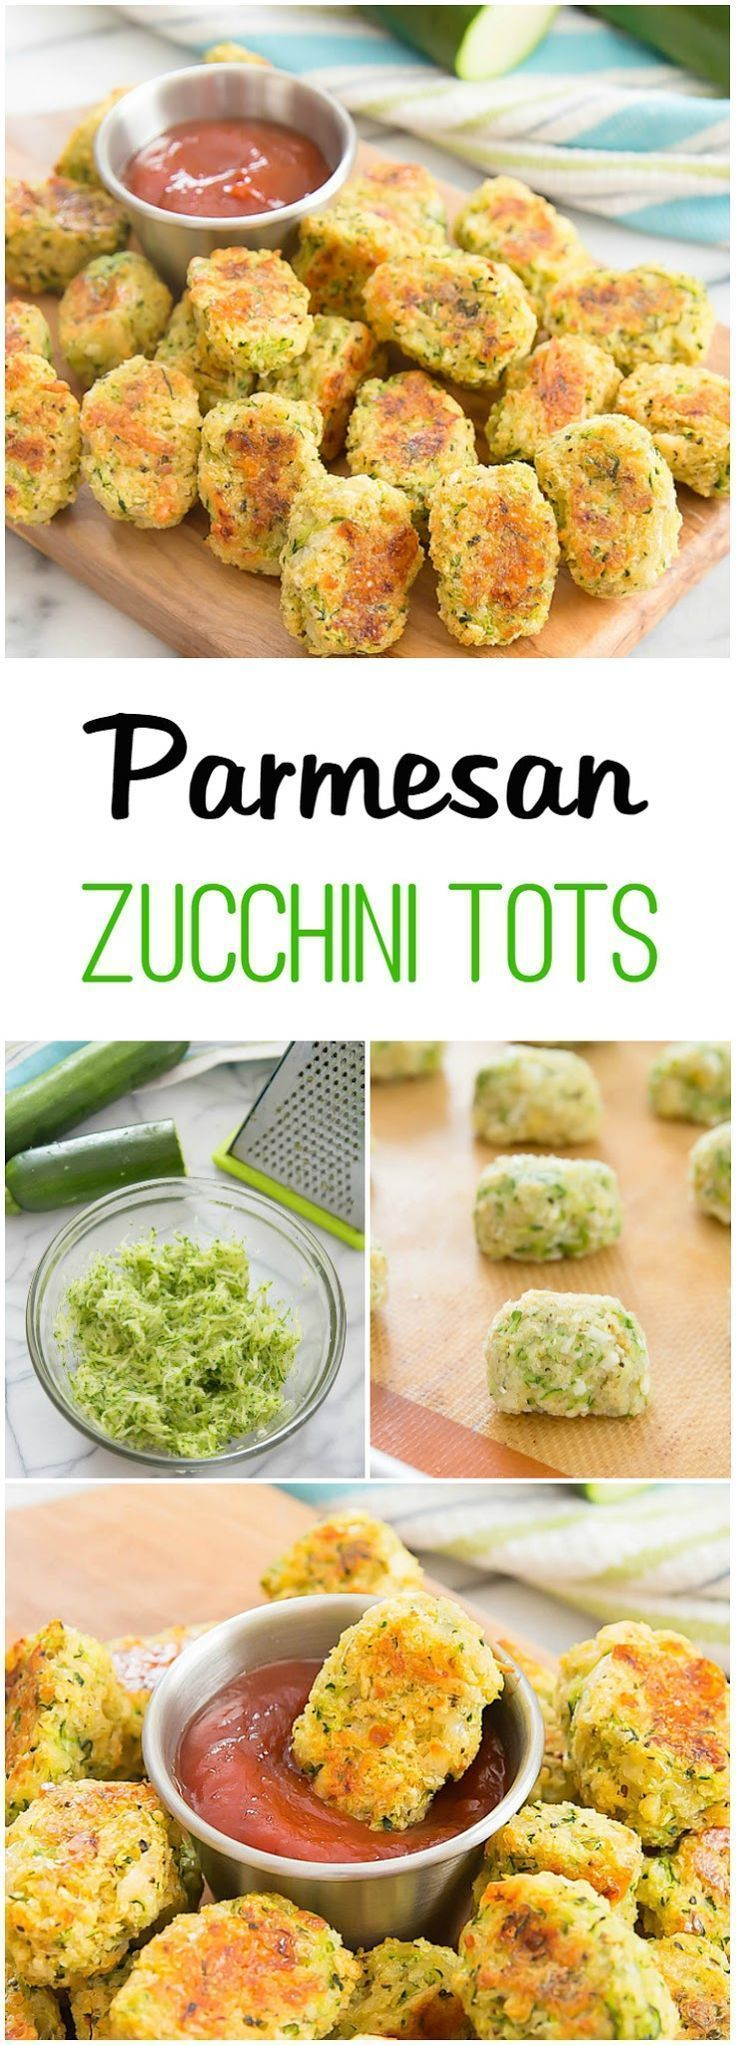 Parmesan Zucchini Tots. Easy, healthy and fun! #fitness food clean eating #fitness food healthy #fit...